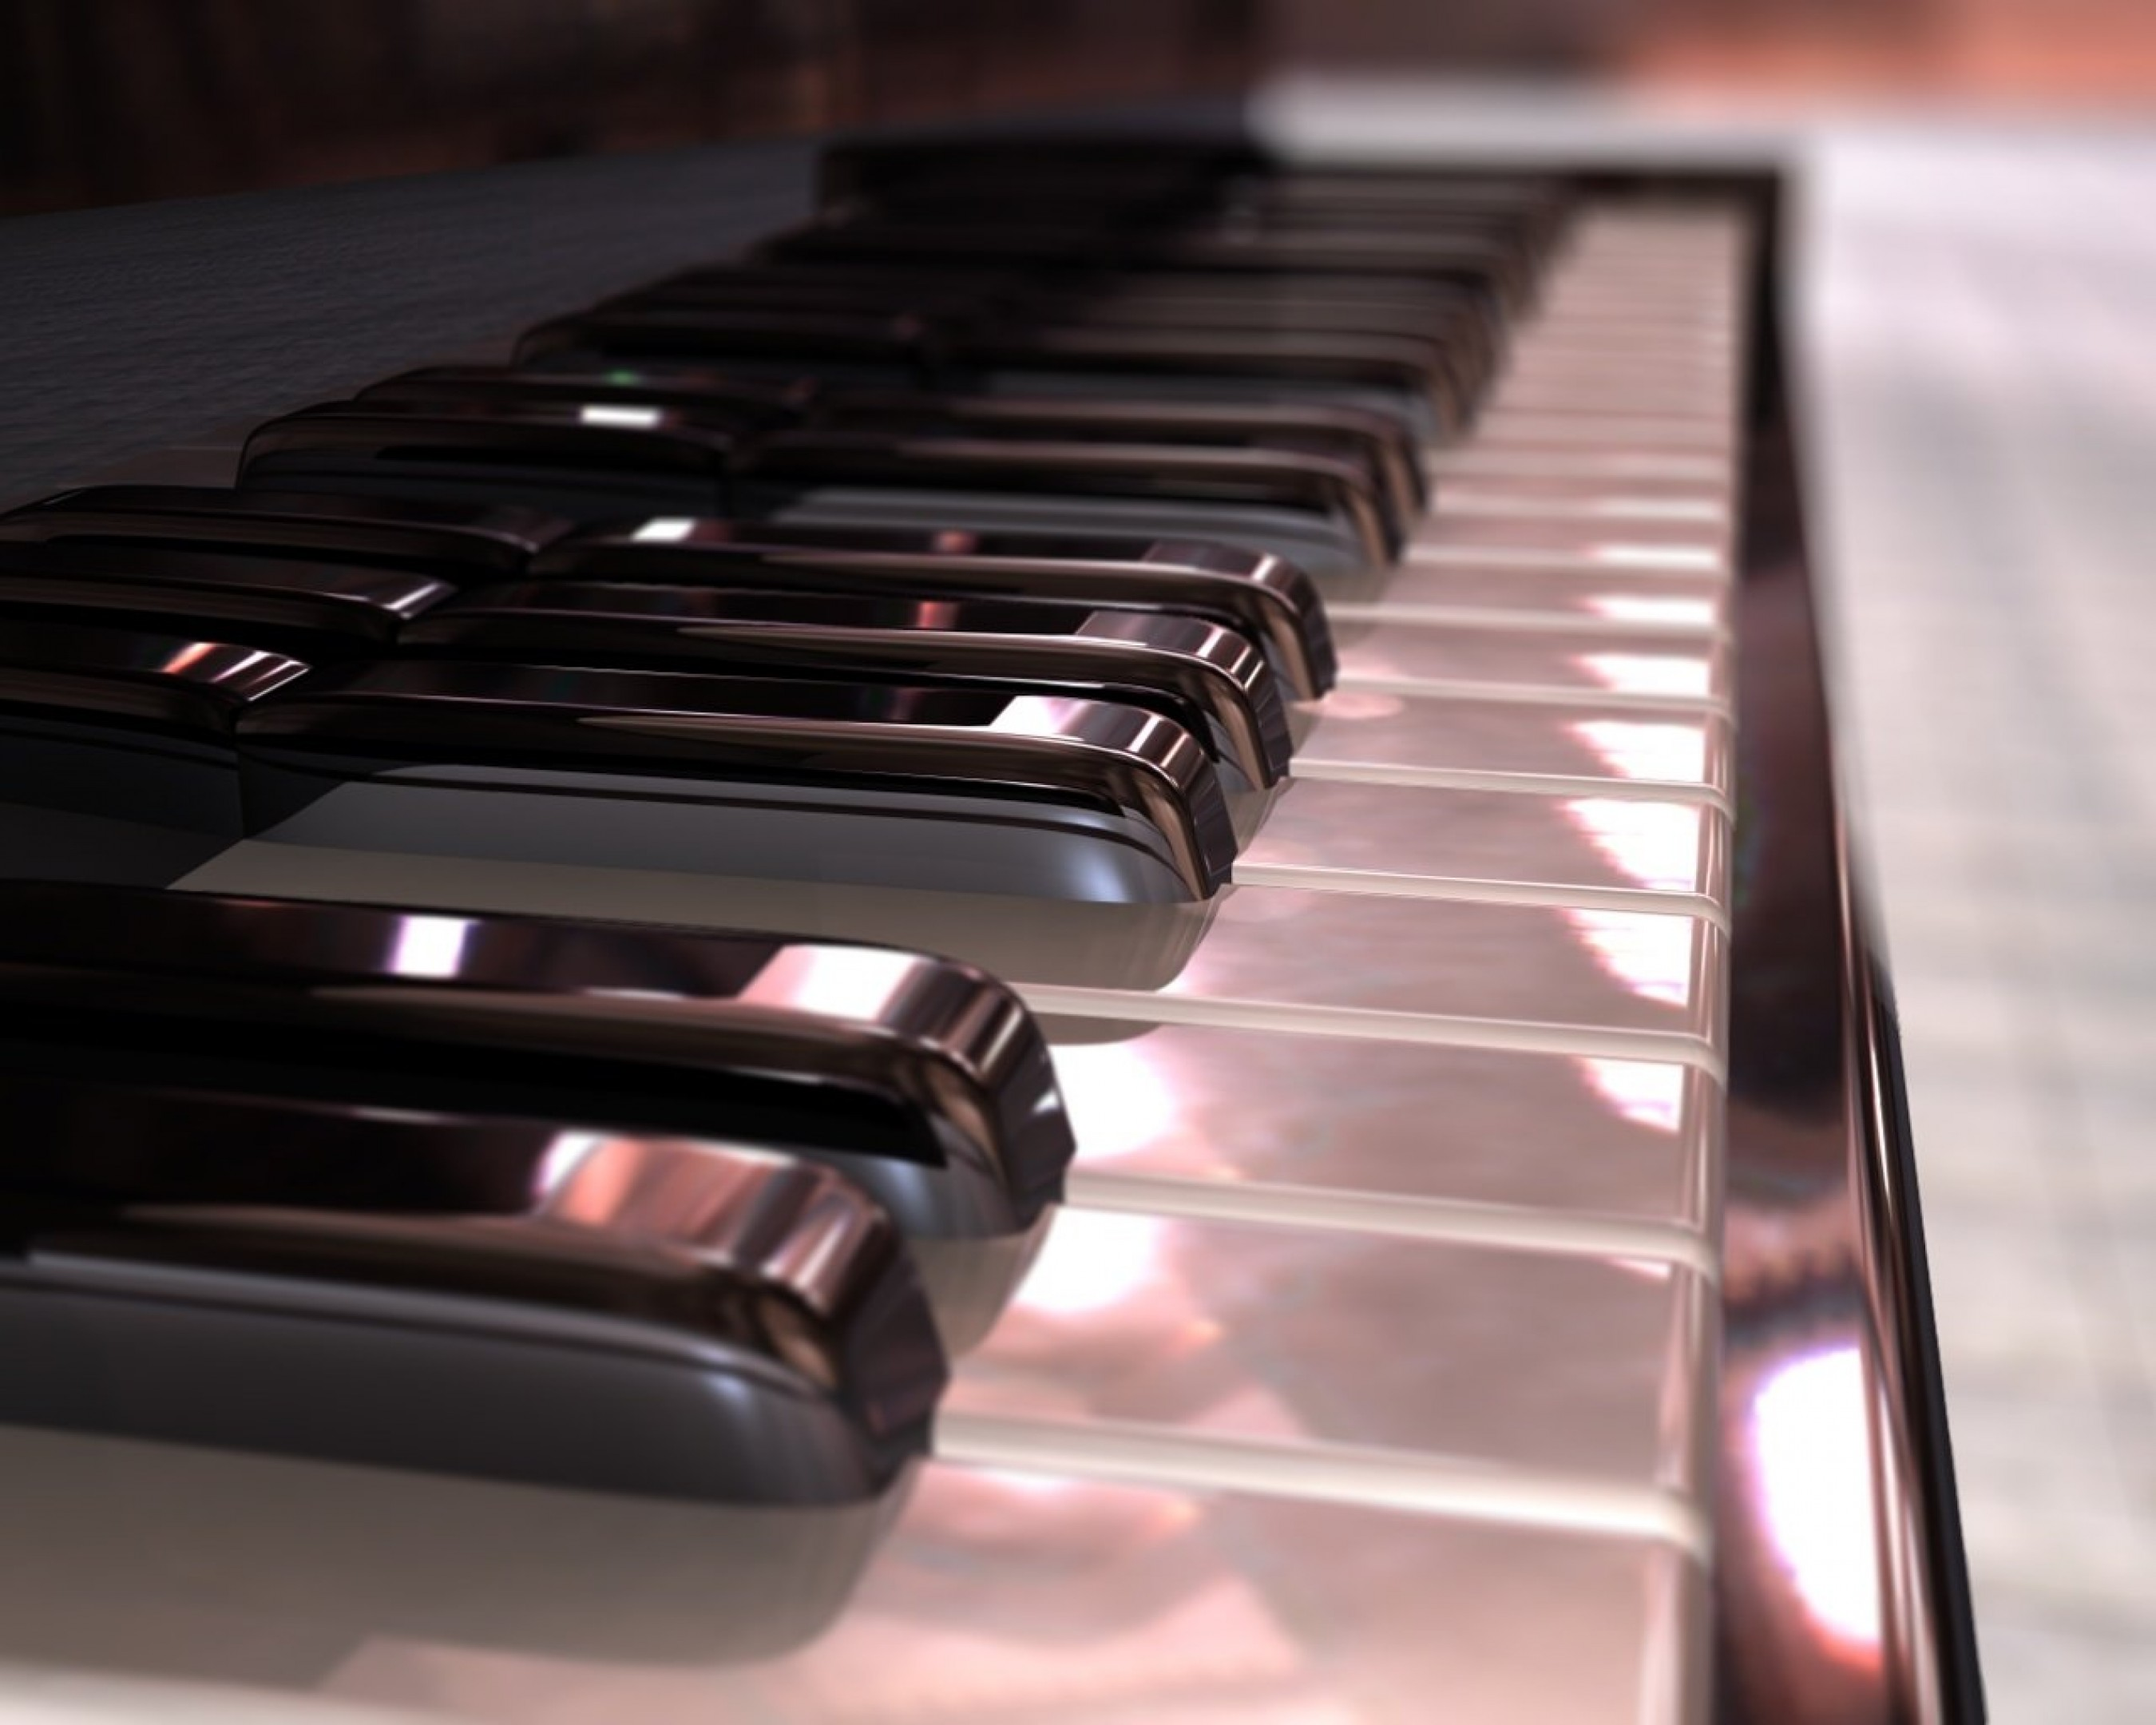 Piano 4k Wallpaper Freshwidewallpaperscom 4k 5k 8k Hd